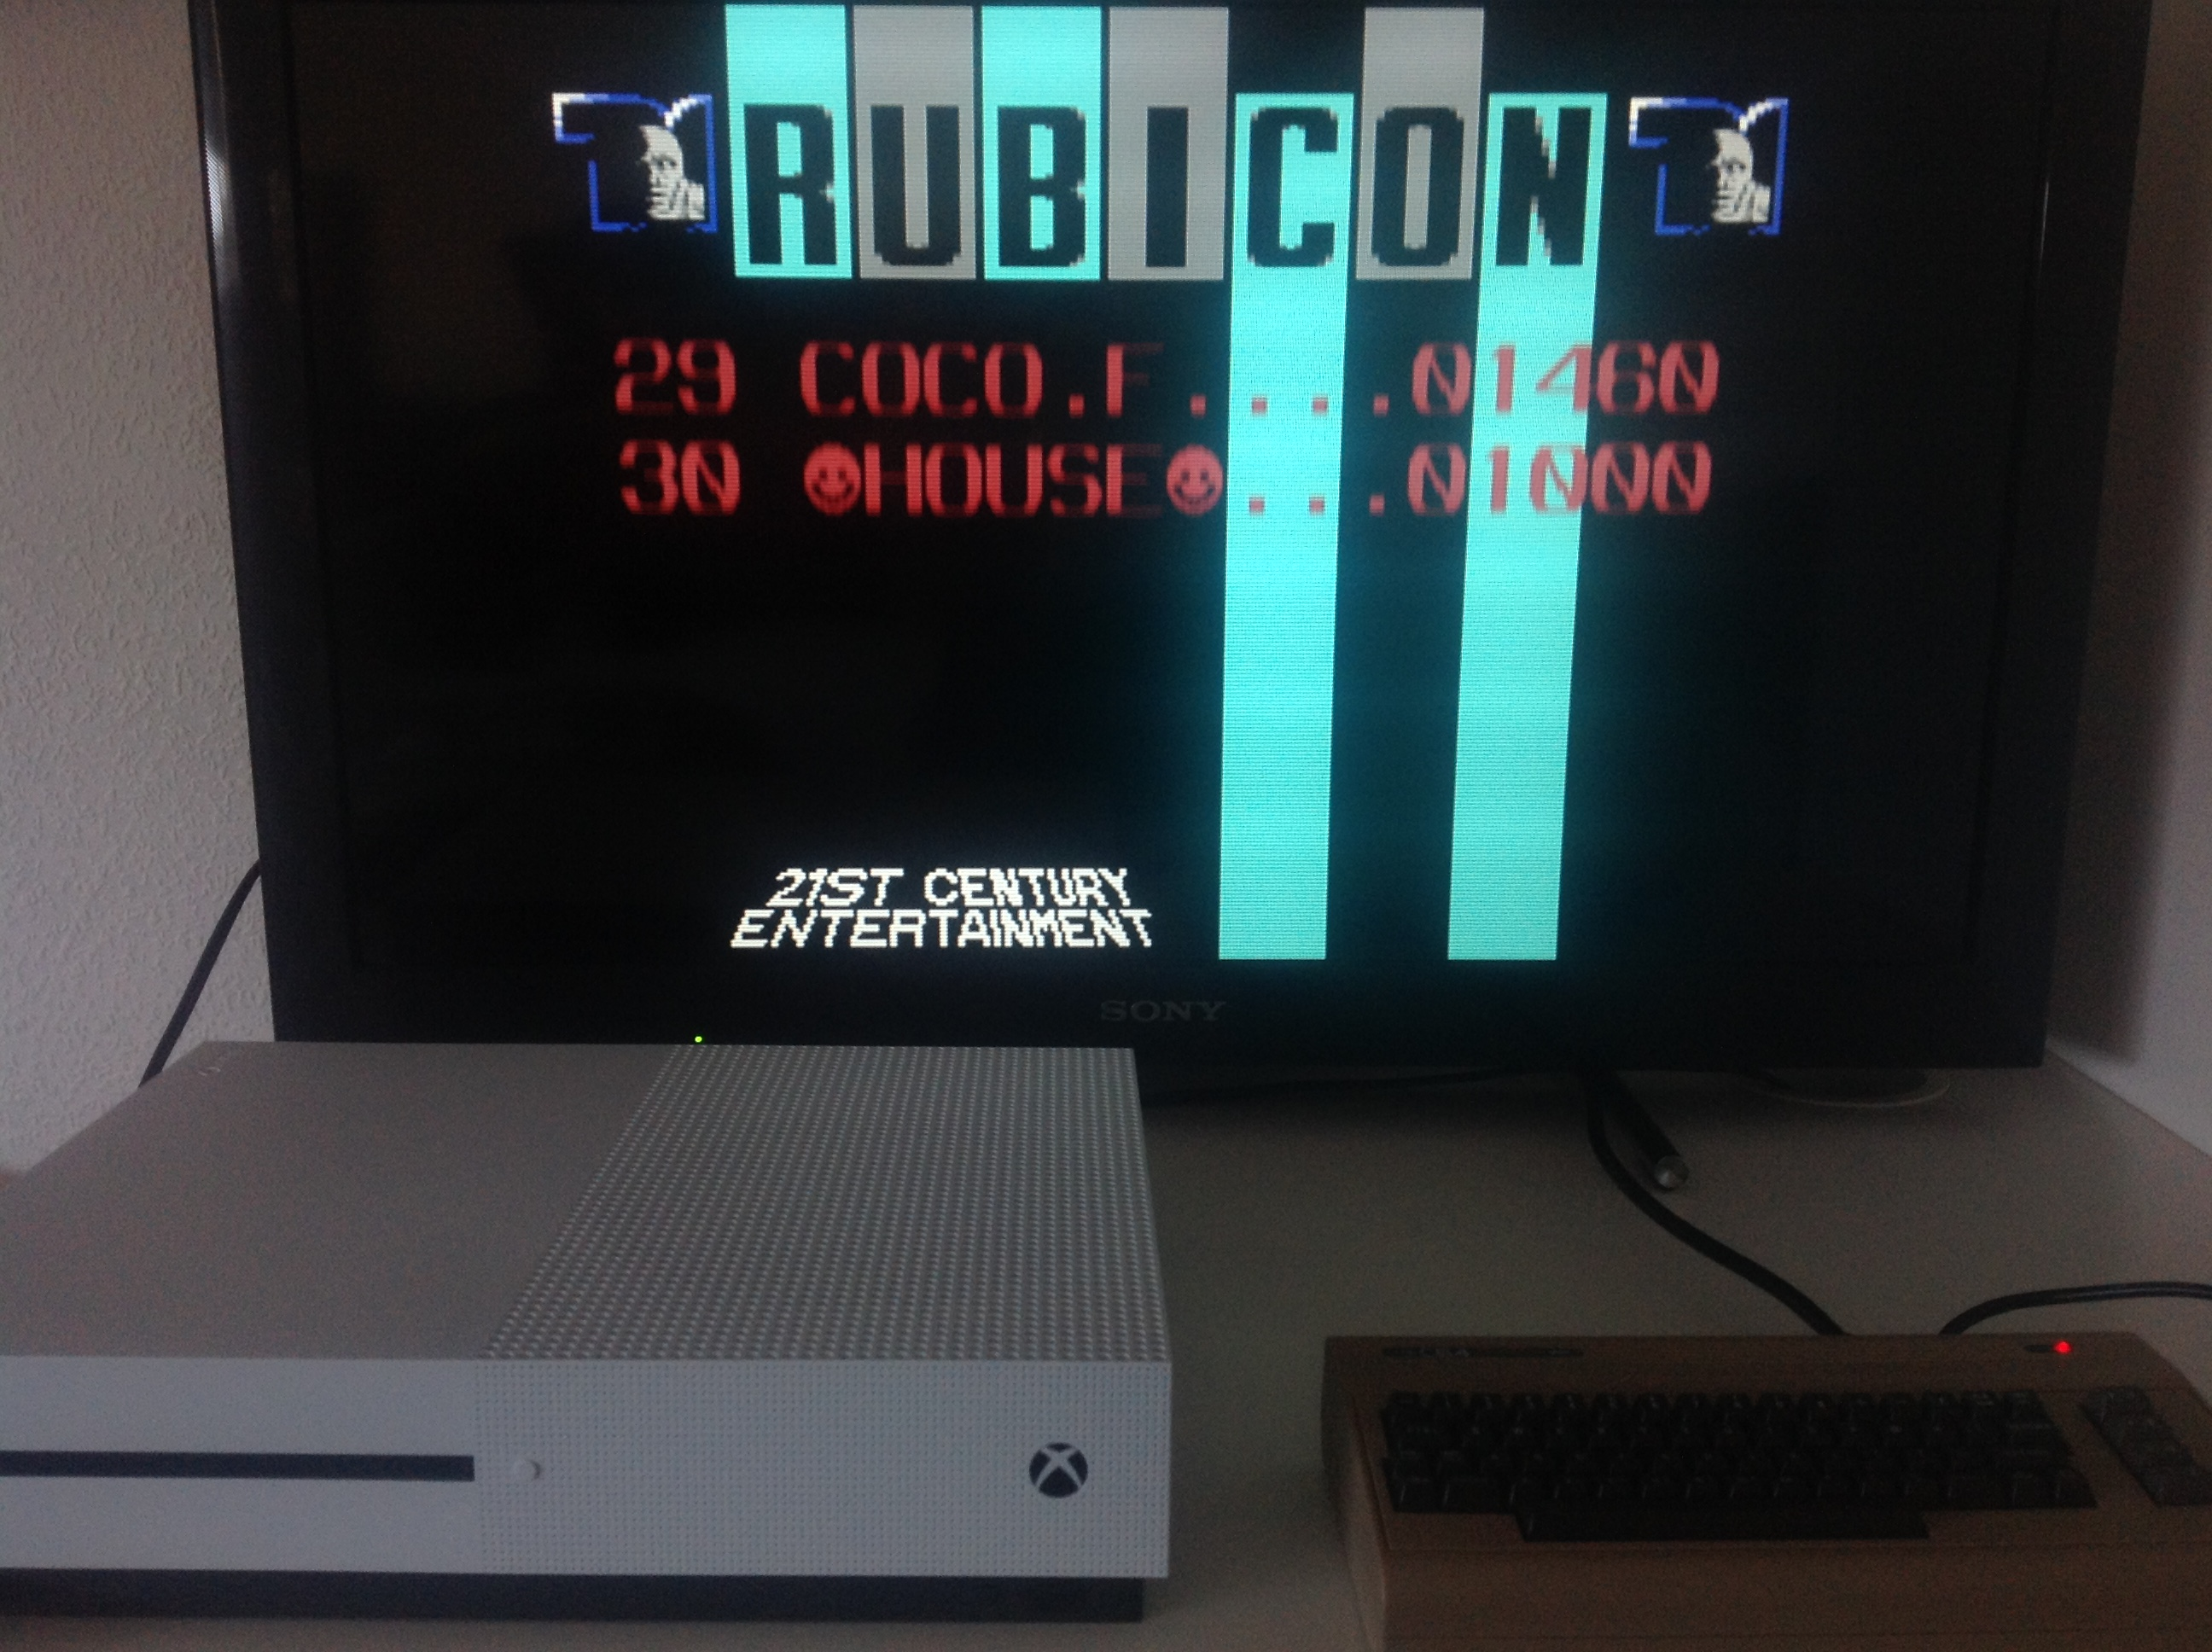 CoCoForest: Rubicon (Commodore 64 Emulated) 1,460 points on 2018-04-05 03:14:15